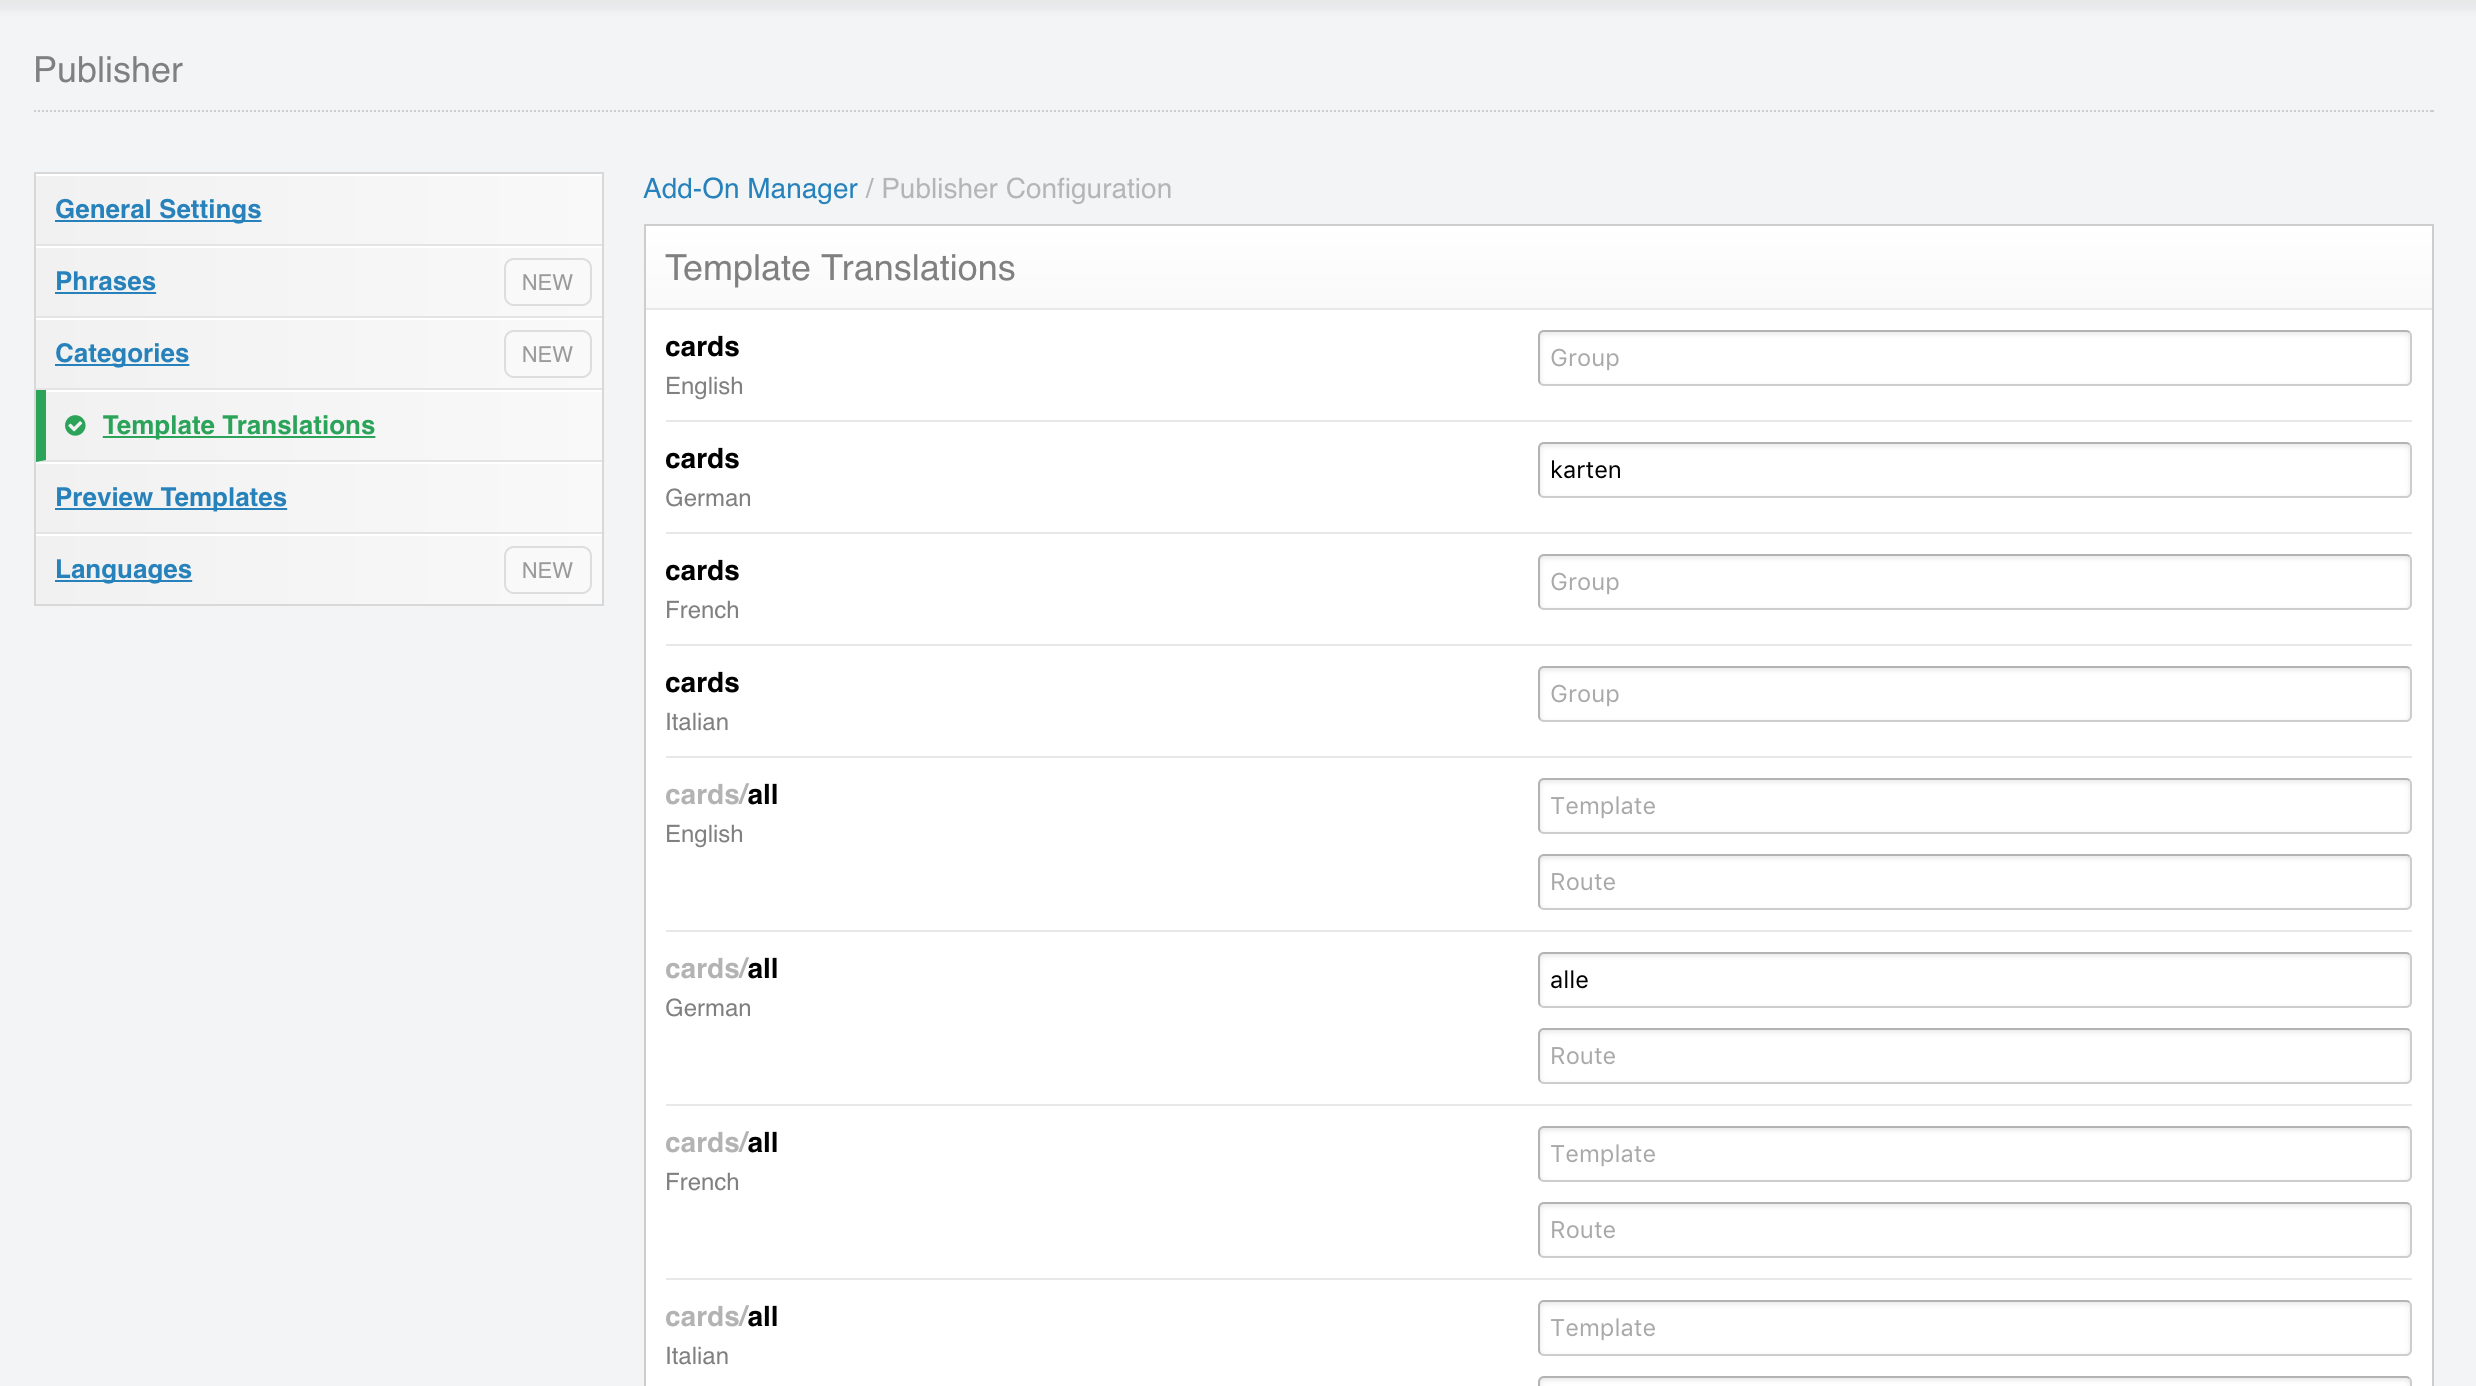 Publisher Multilingual Content And Publishing Workflow In